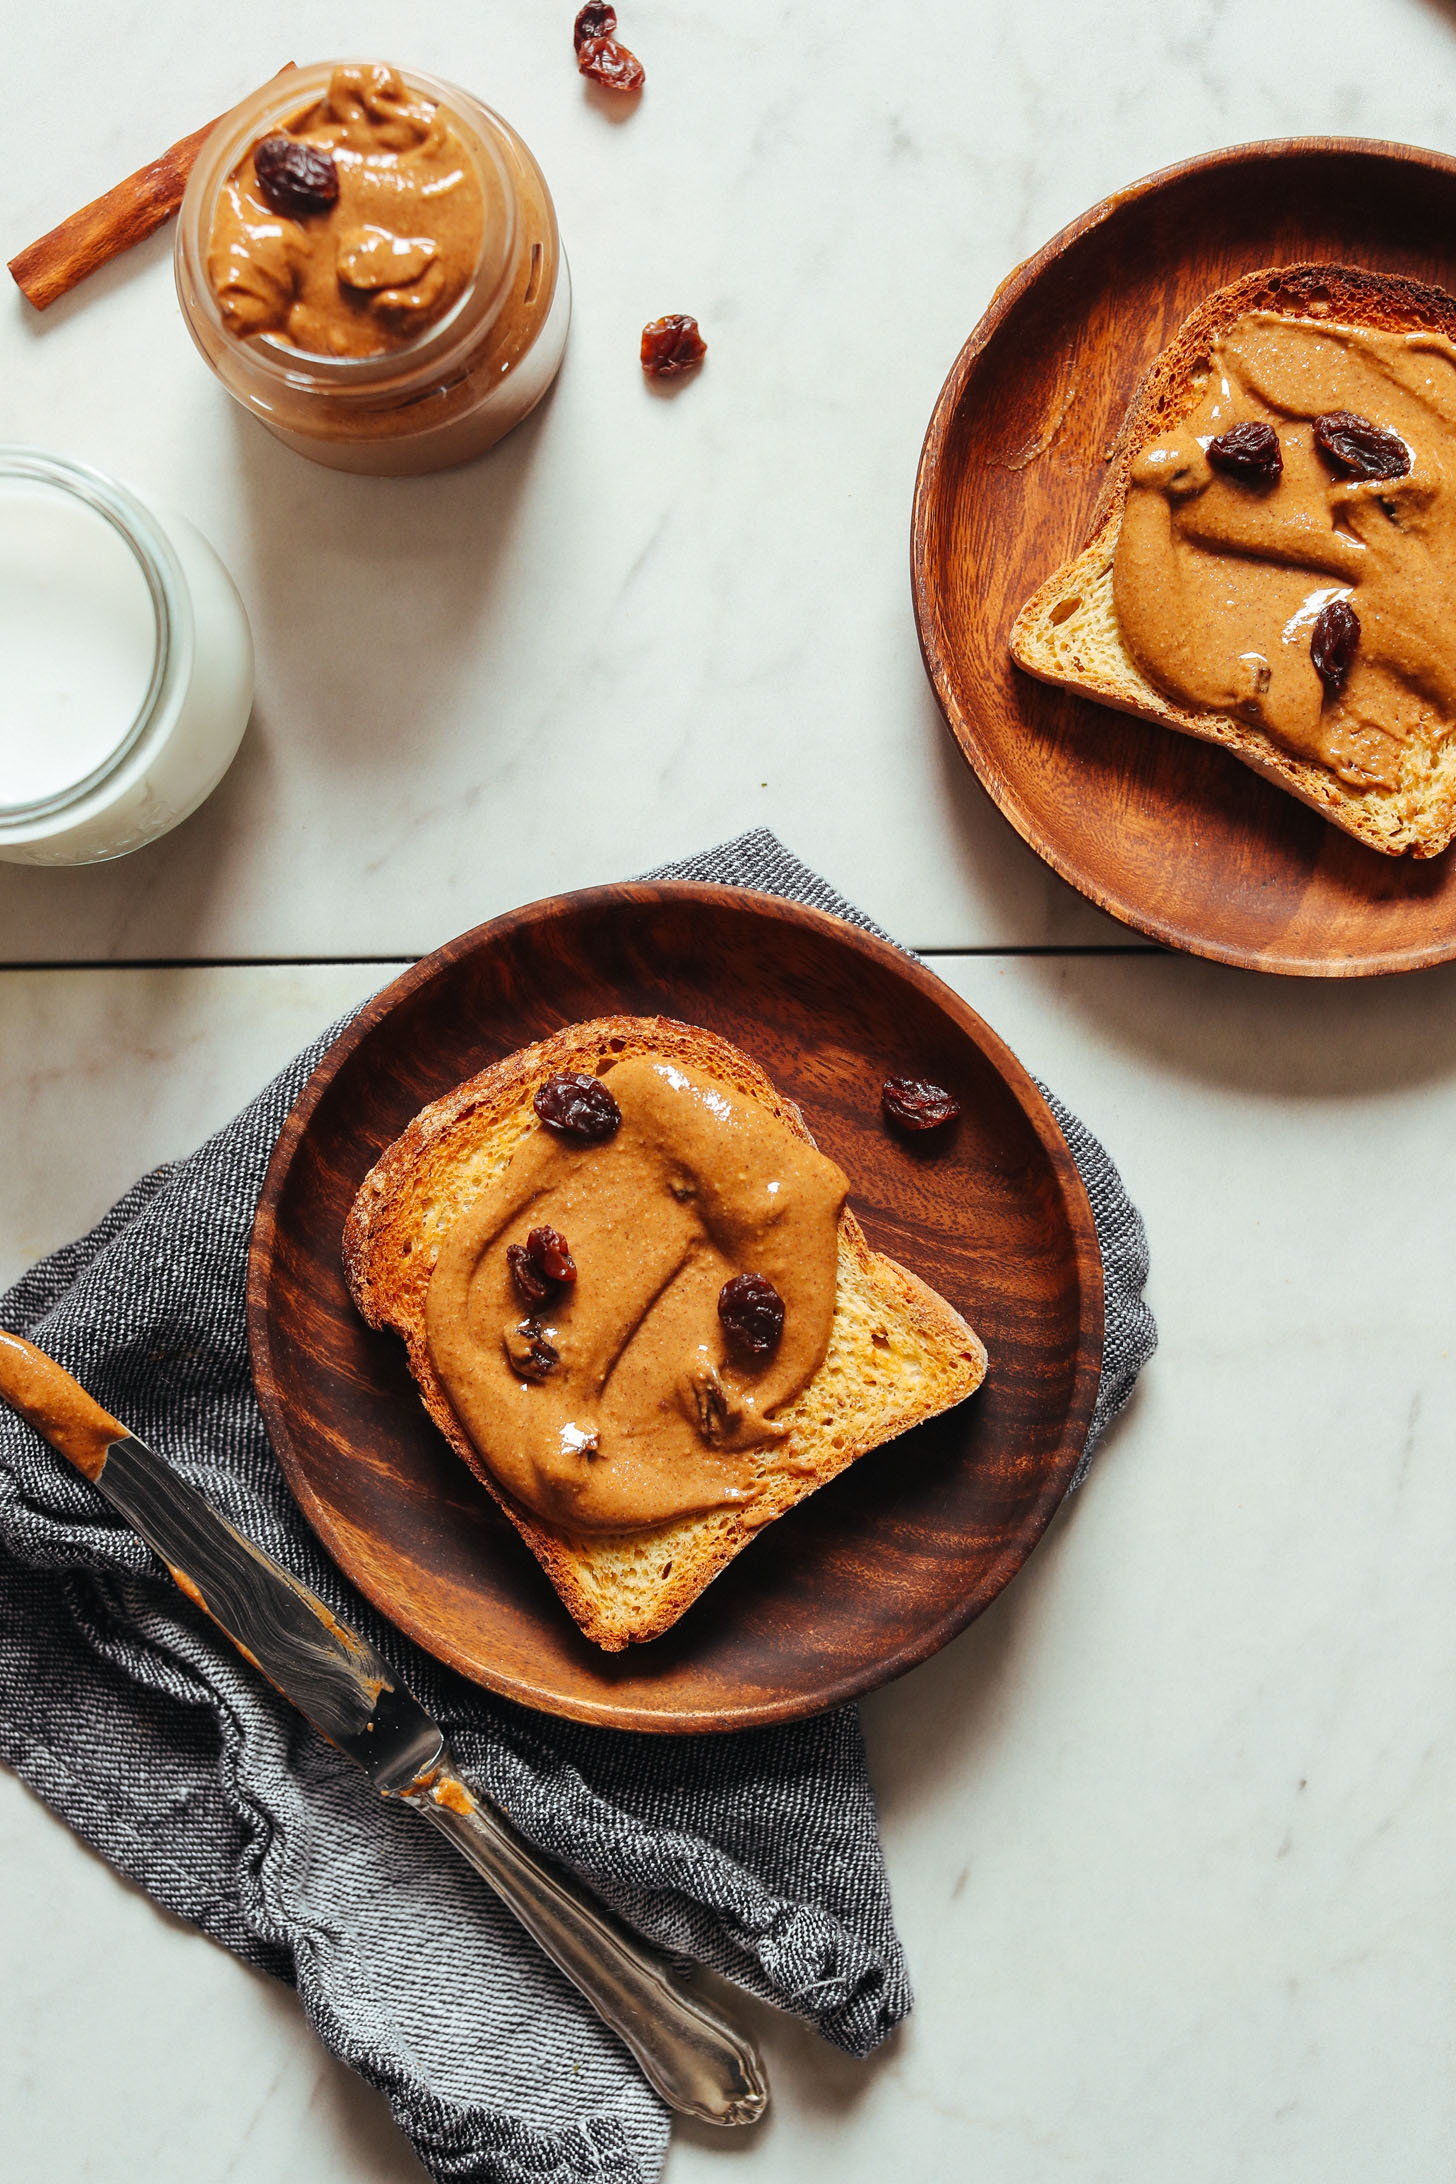 Wood plates featuring slices of gluten-free toast with Cinnamon Raisin Peanut Butter for a delicious plant-based snack